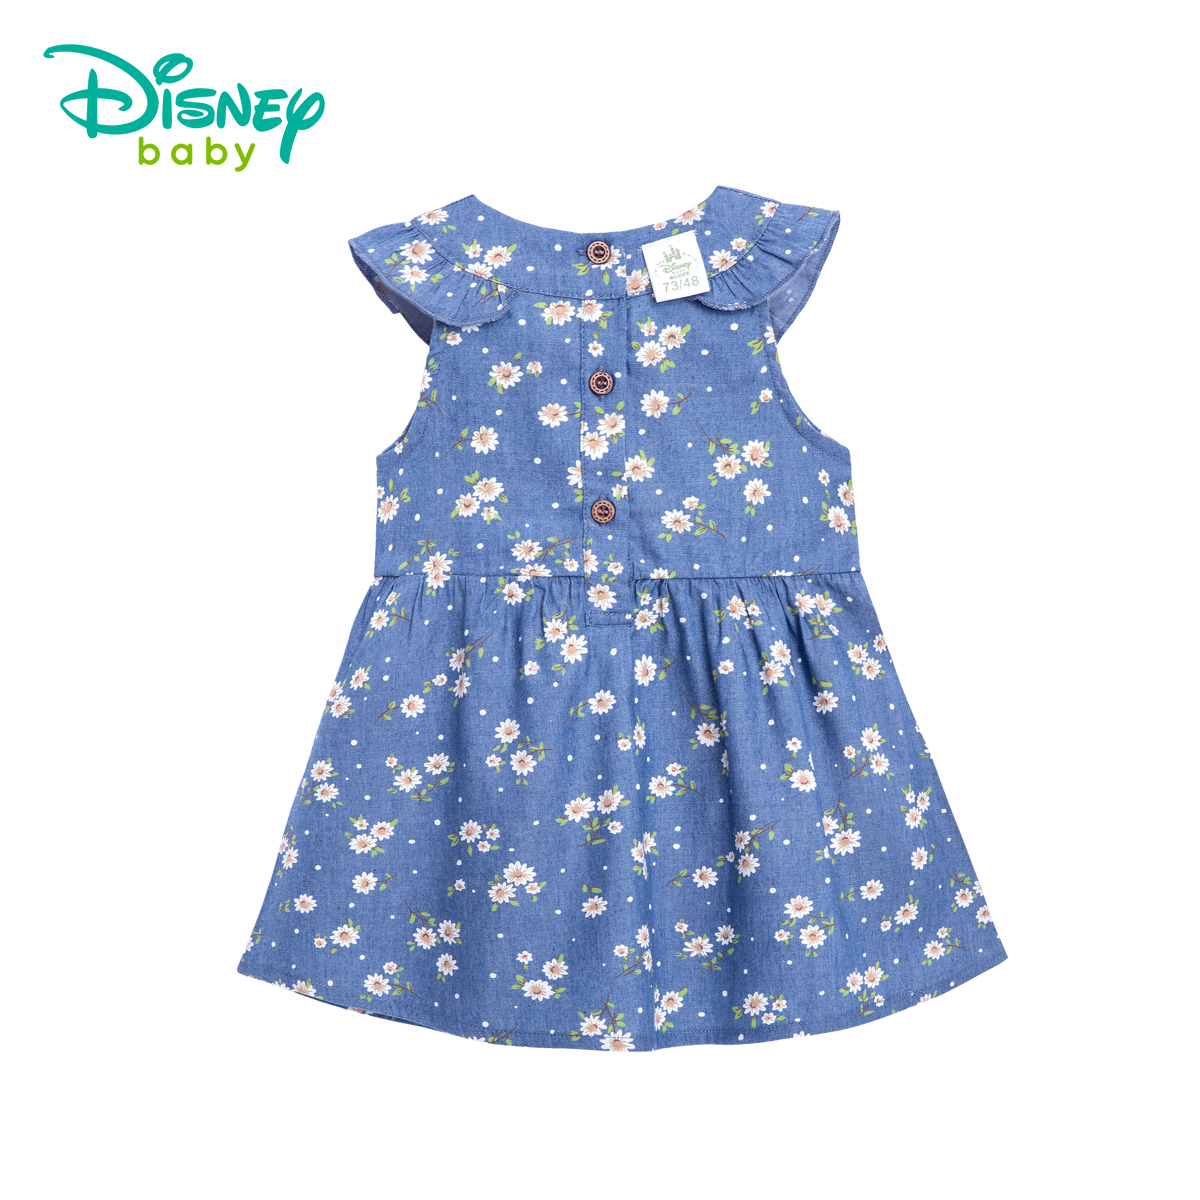 Disney 2018 New Cotton Girl Dress Kids Summer Children Clothes Princess Korean Cute Thin Cowboy Flounce Dress Size 66-120 hot for asus x551ca laptop motherboard x551ca mainboard rev2 2 1007u 100% tested new motherboard